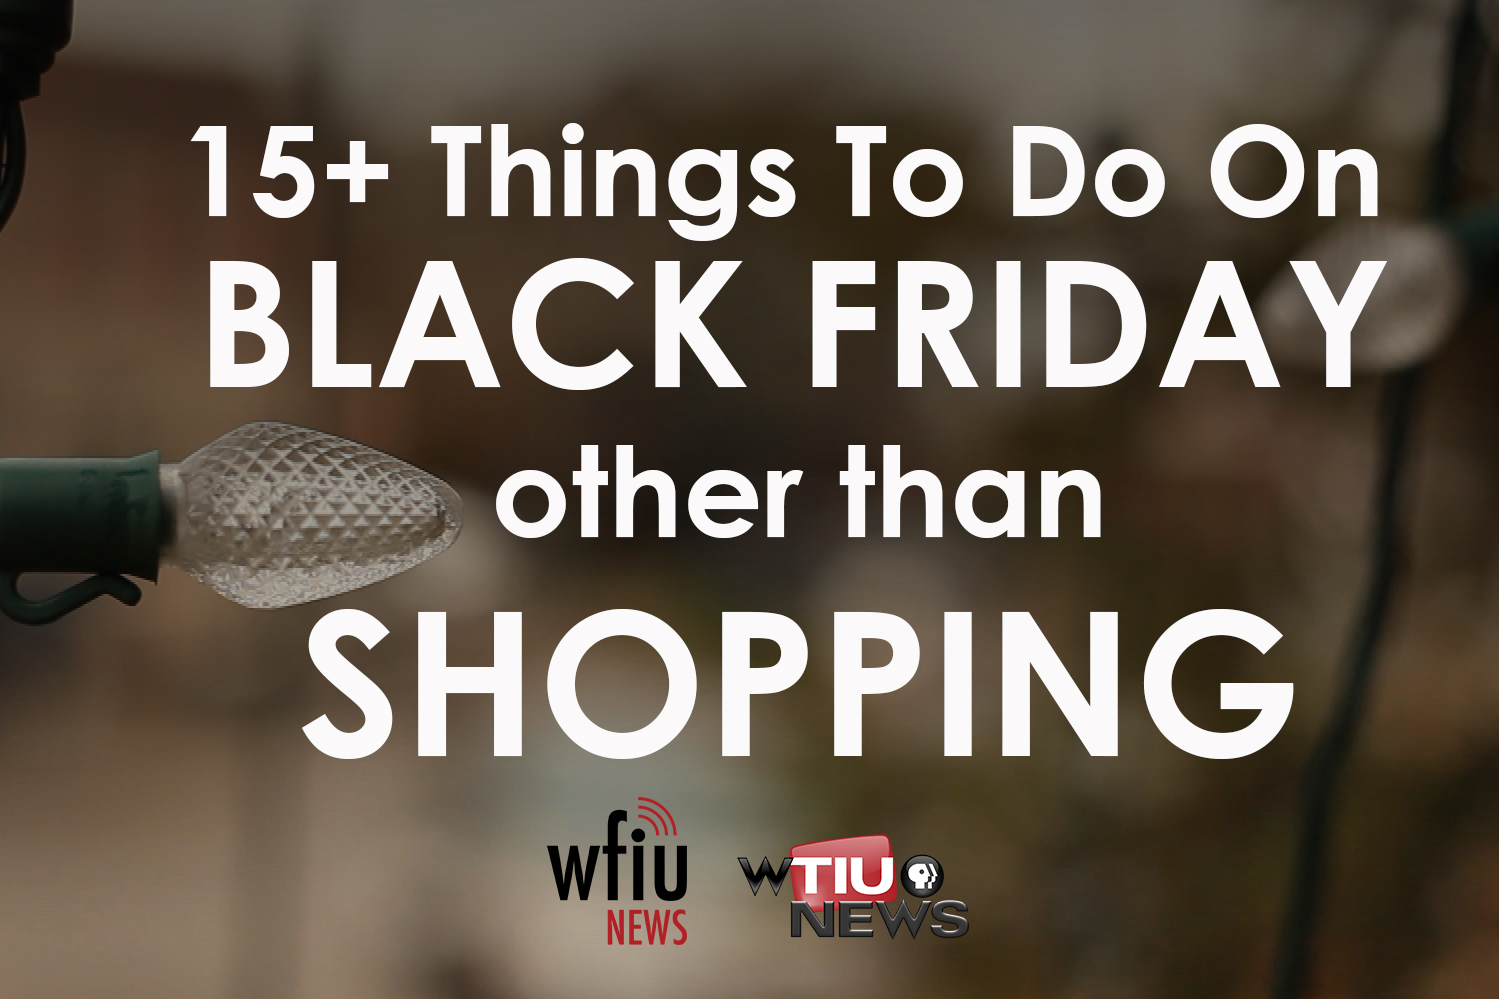 """A single white christmas light in front of a fuzzy outdoor background. Words in white read """"15+ things to do on Black Friday other than Shopping."""" the WFIU news and WTIU news logos are at the bottom."""